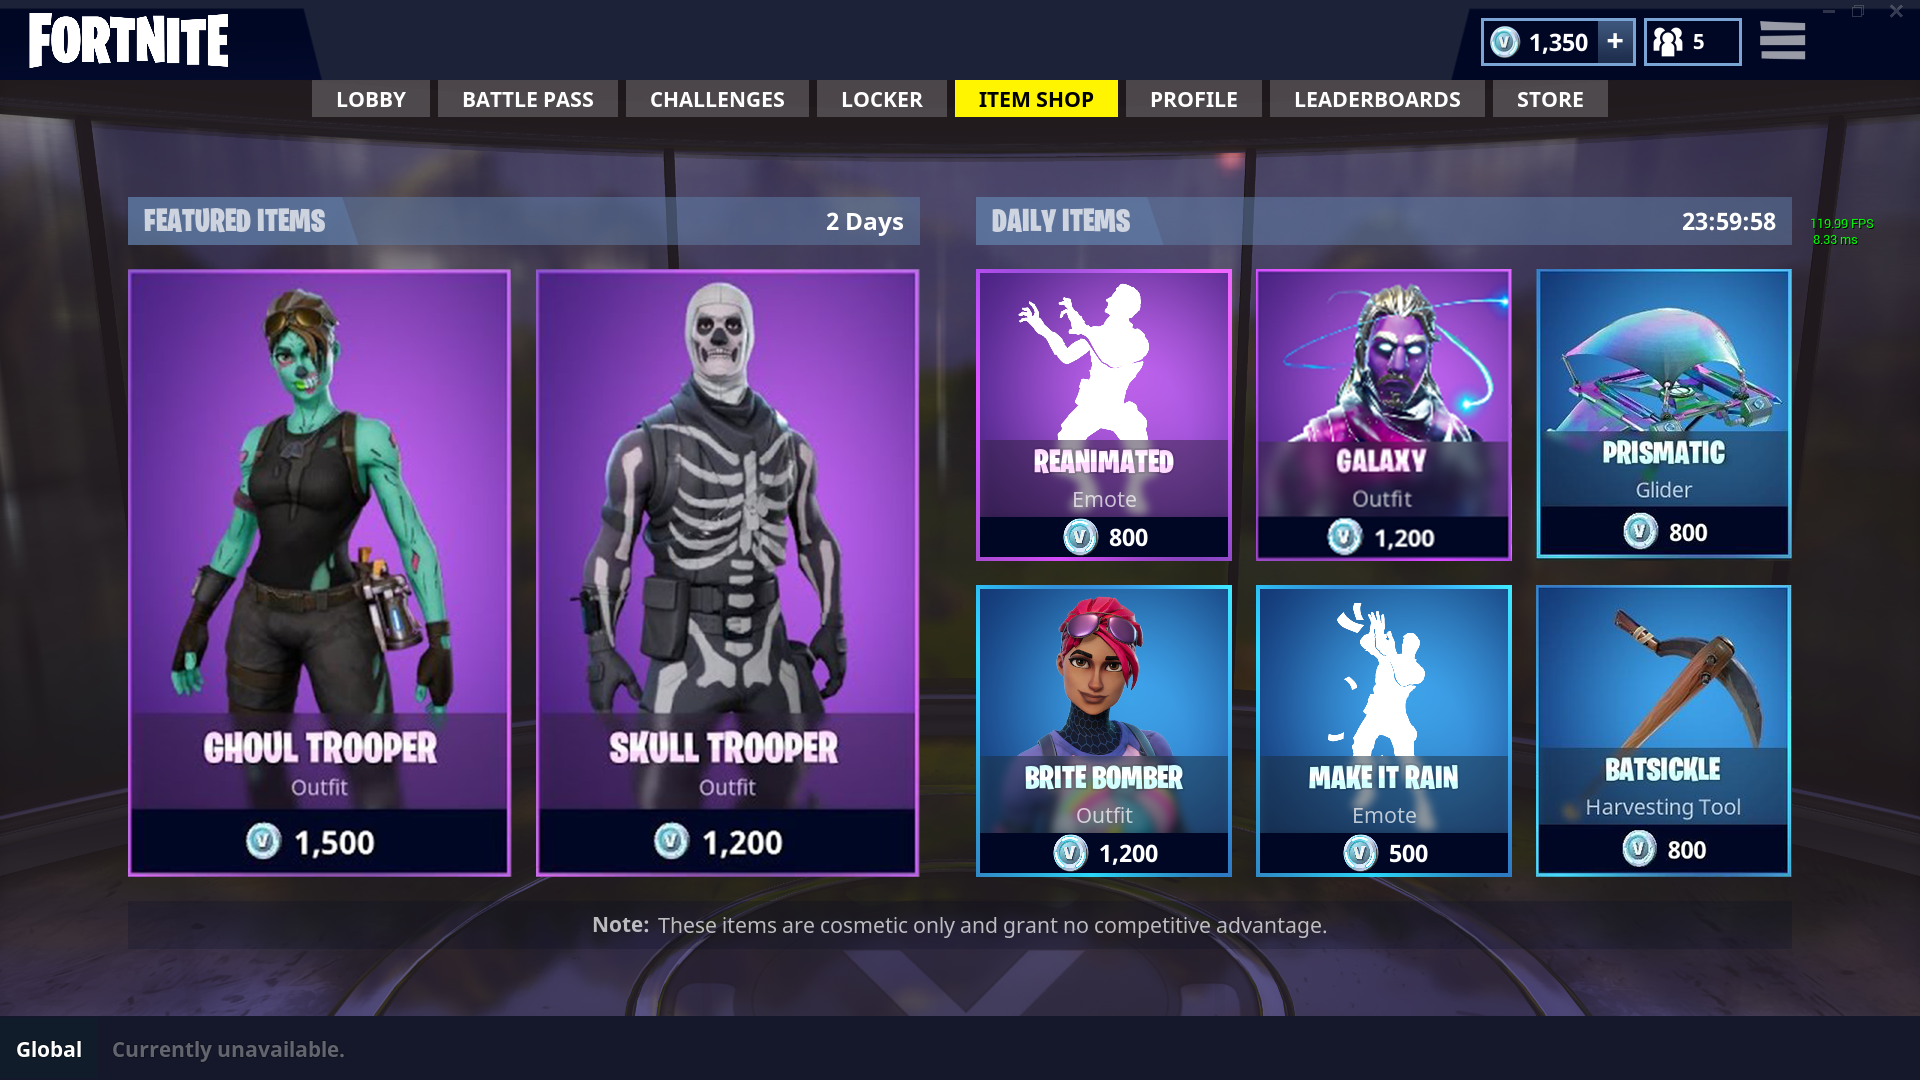 Community artist gives the Item Shop a spectacular makeover ...